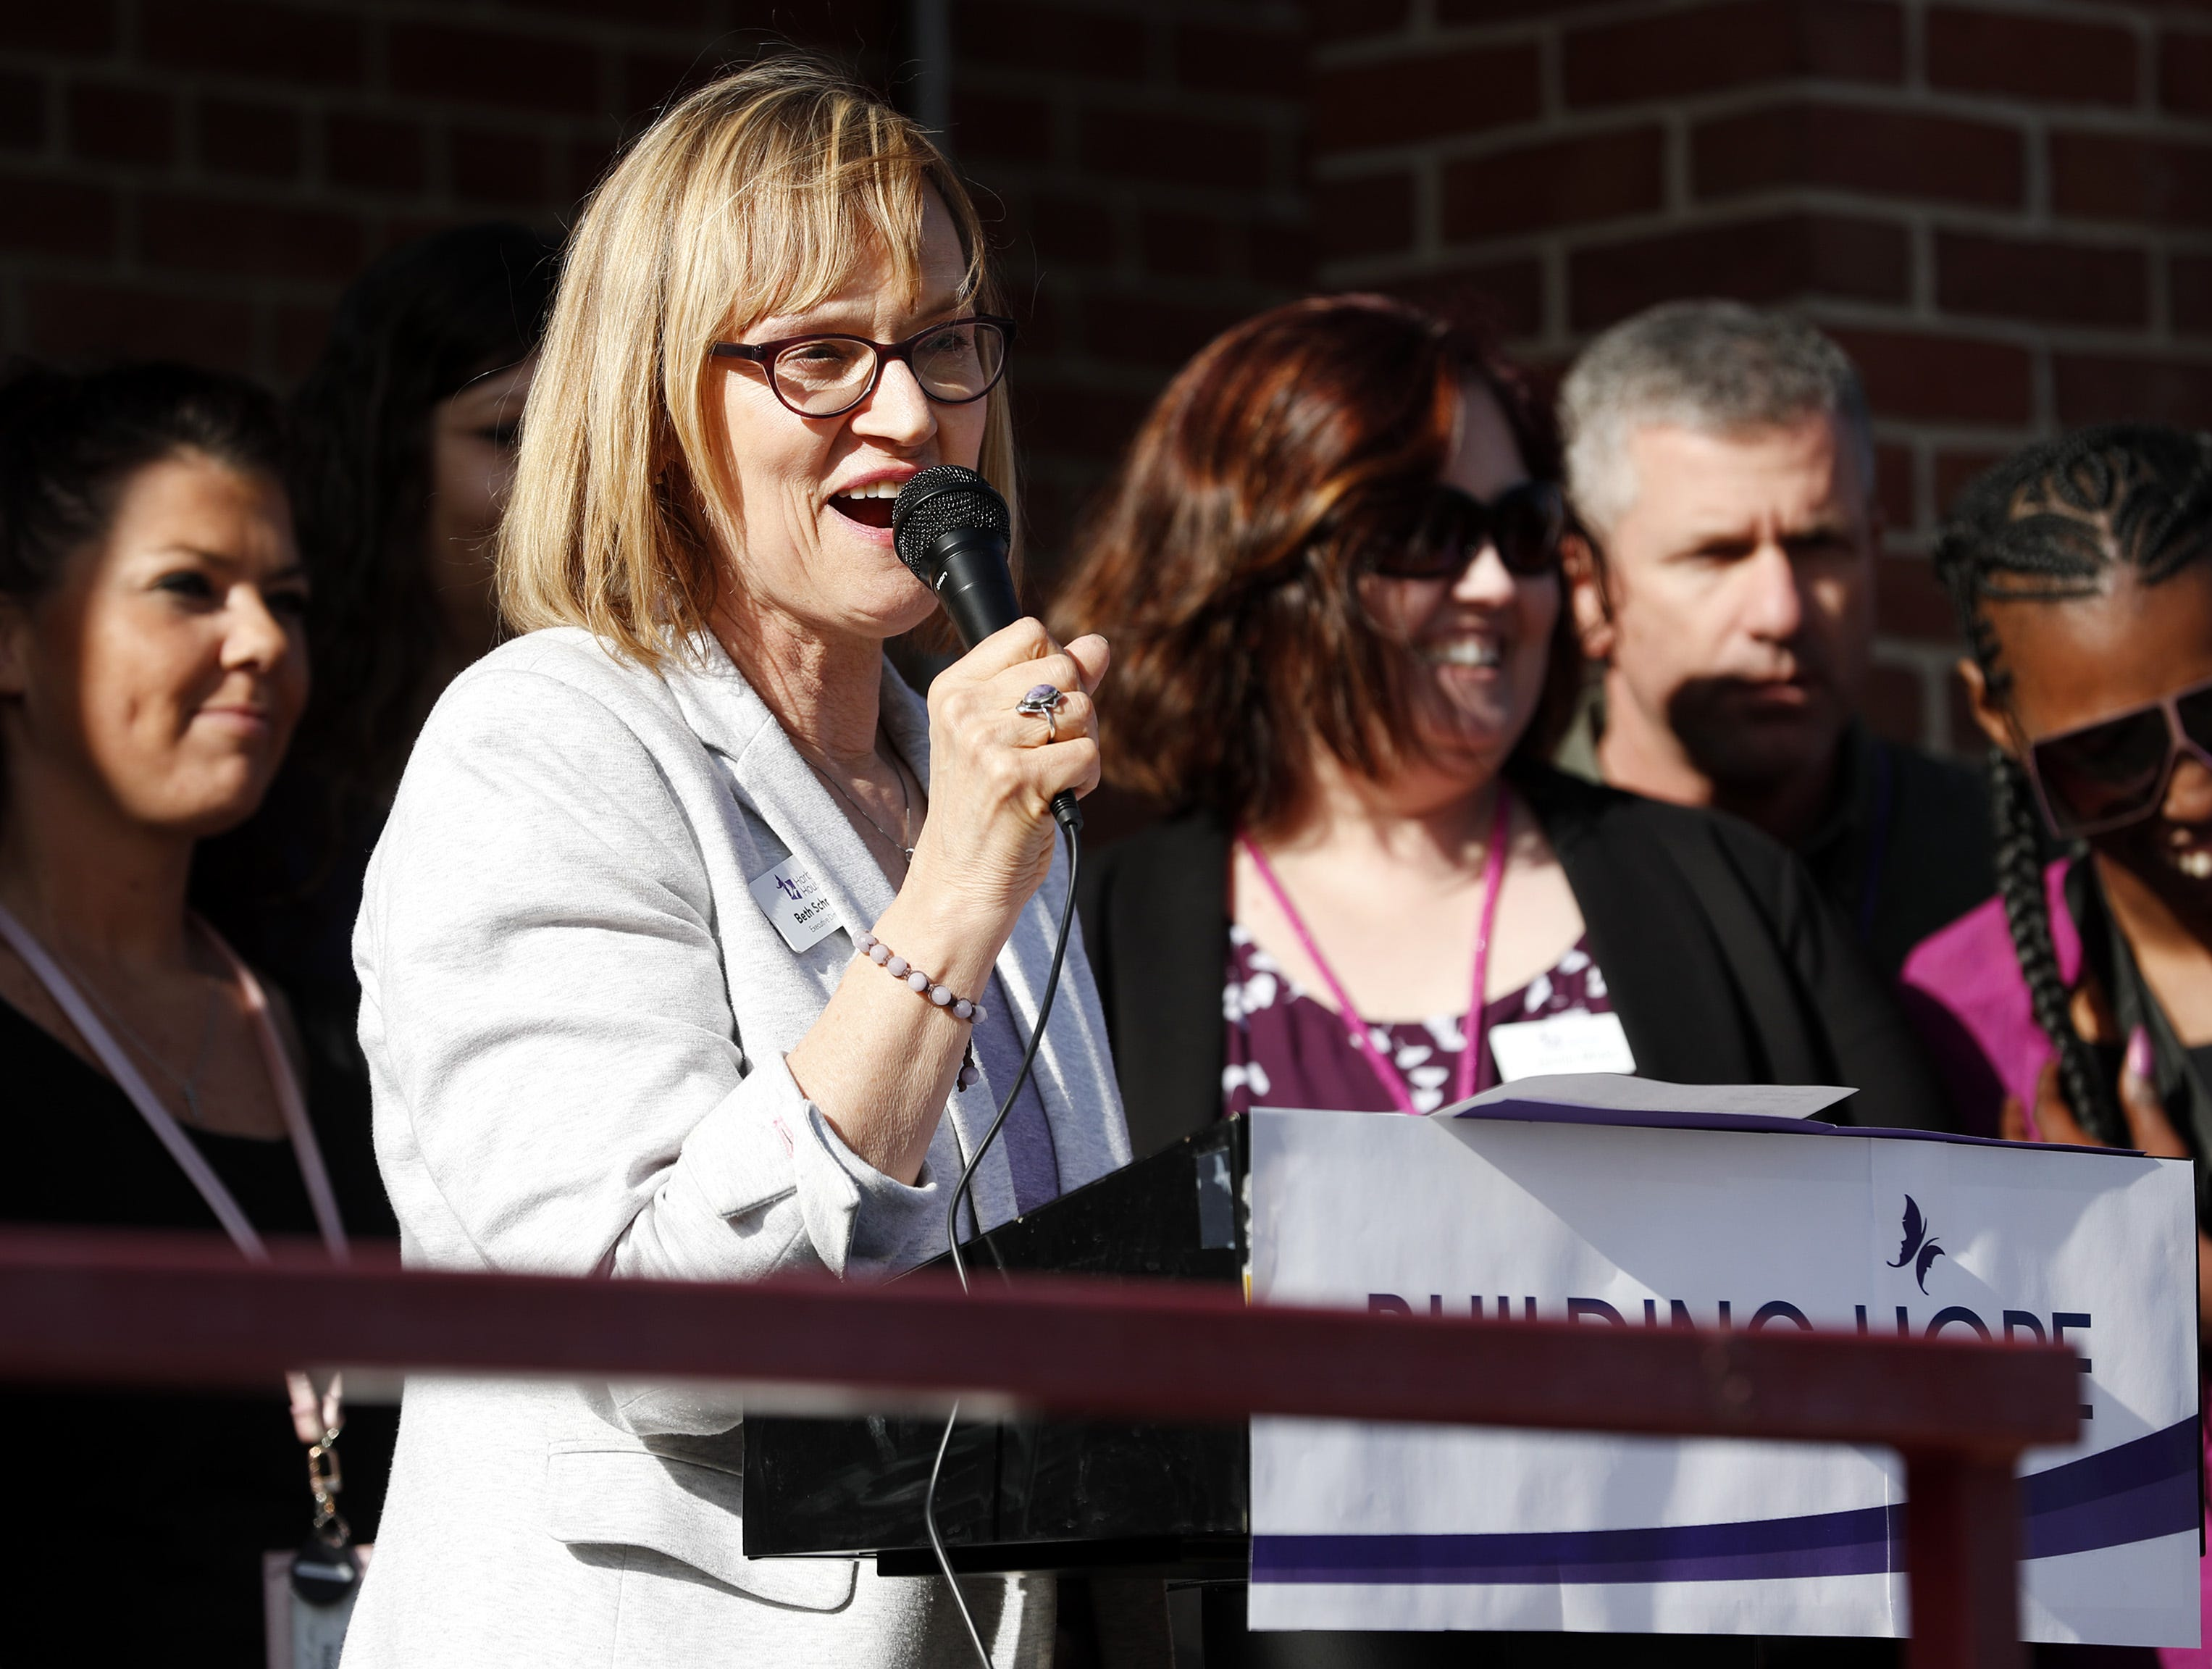 Beth Schnorr, executive director of Harbor House Domestic Abuse Programs, speaks Tuesday to a crowd gathered at the ribbon cutting and open house for Harbor House's updated facility.